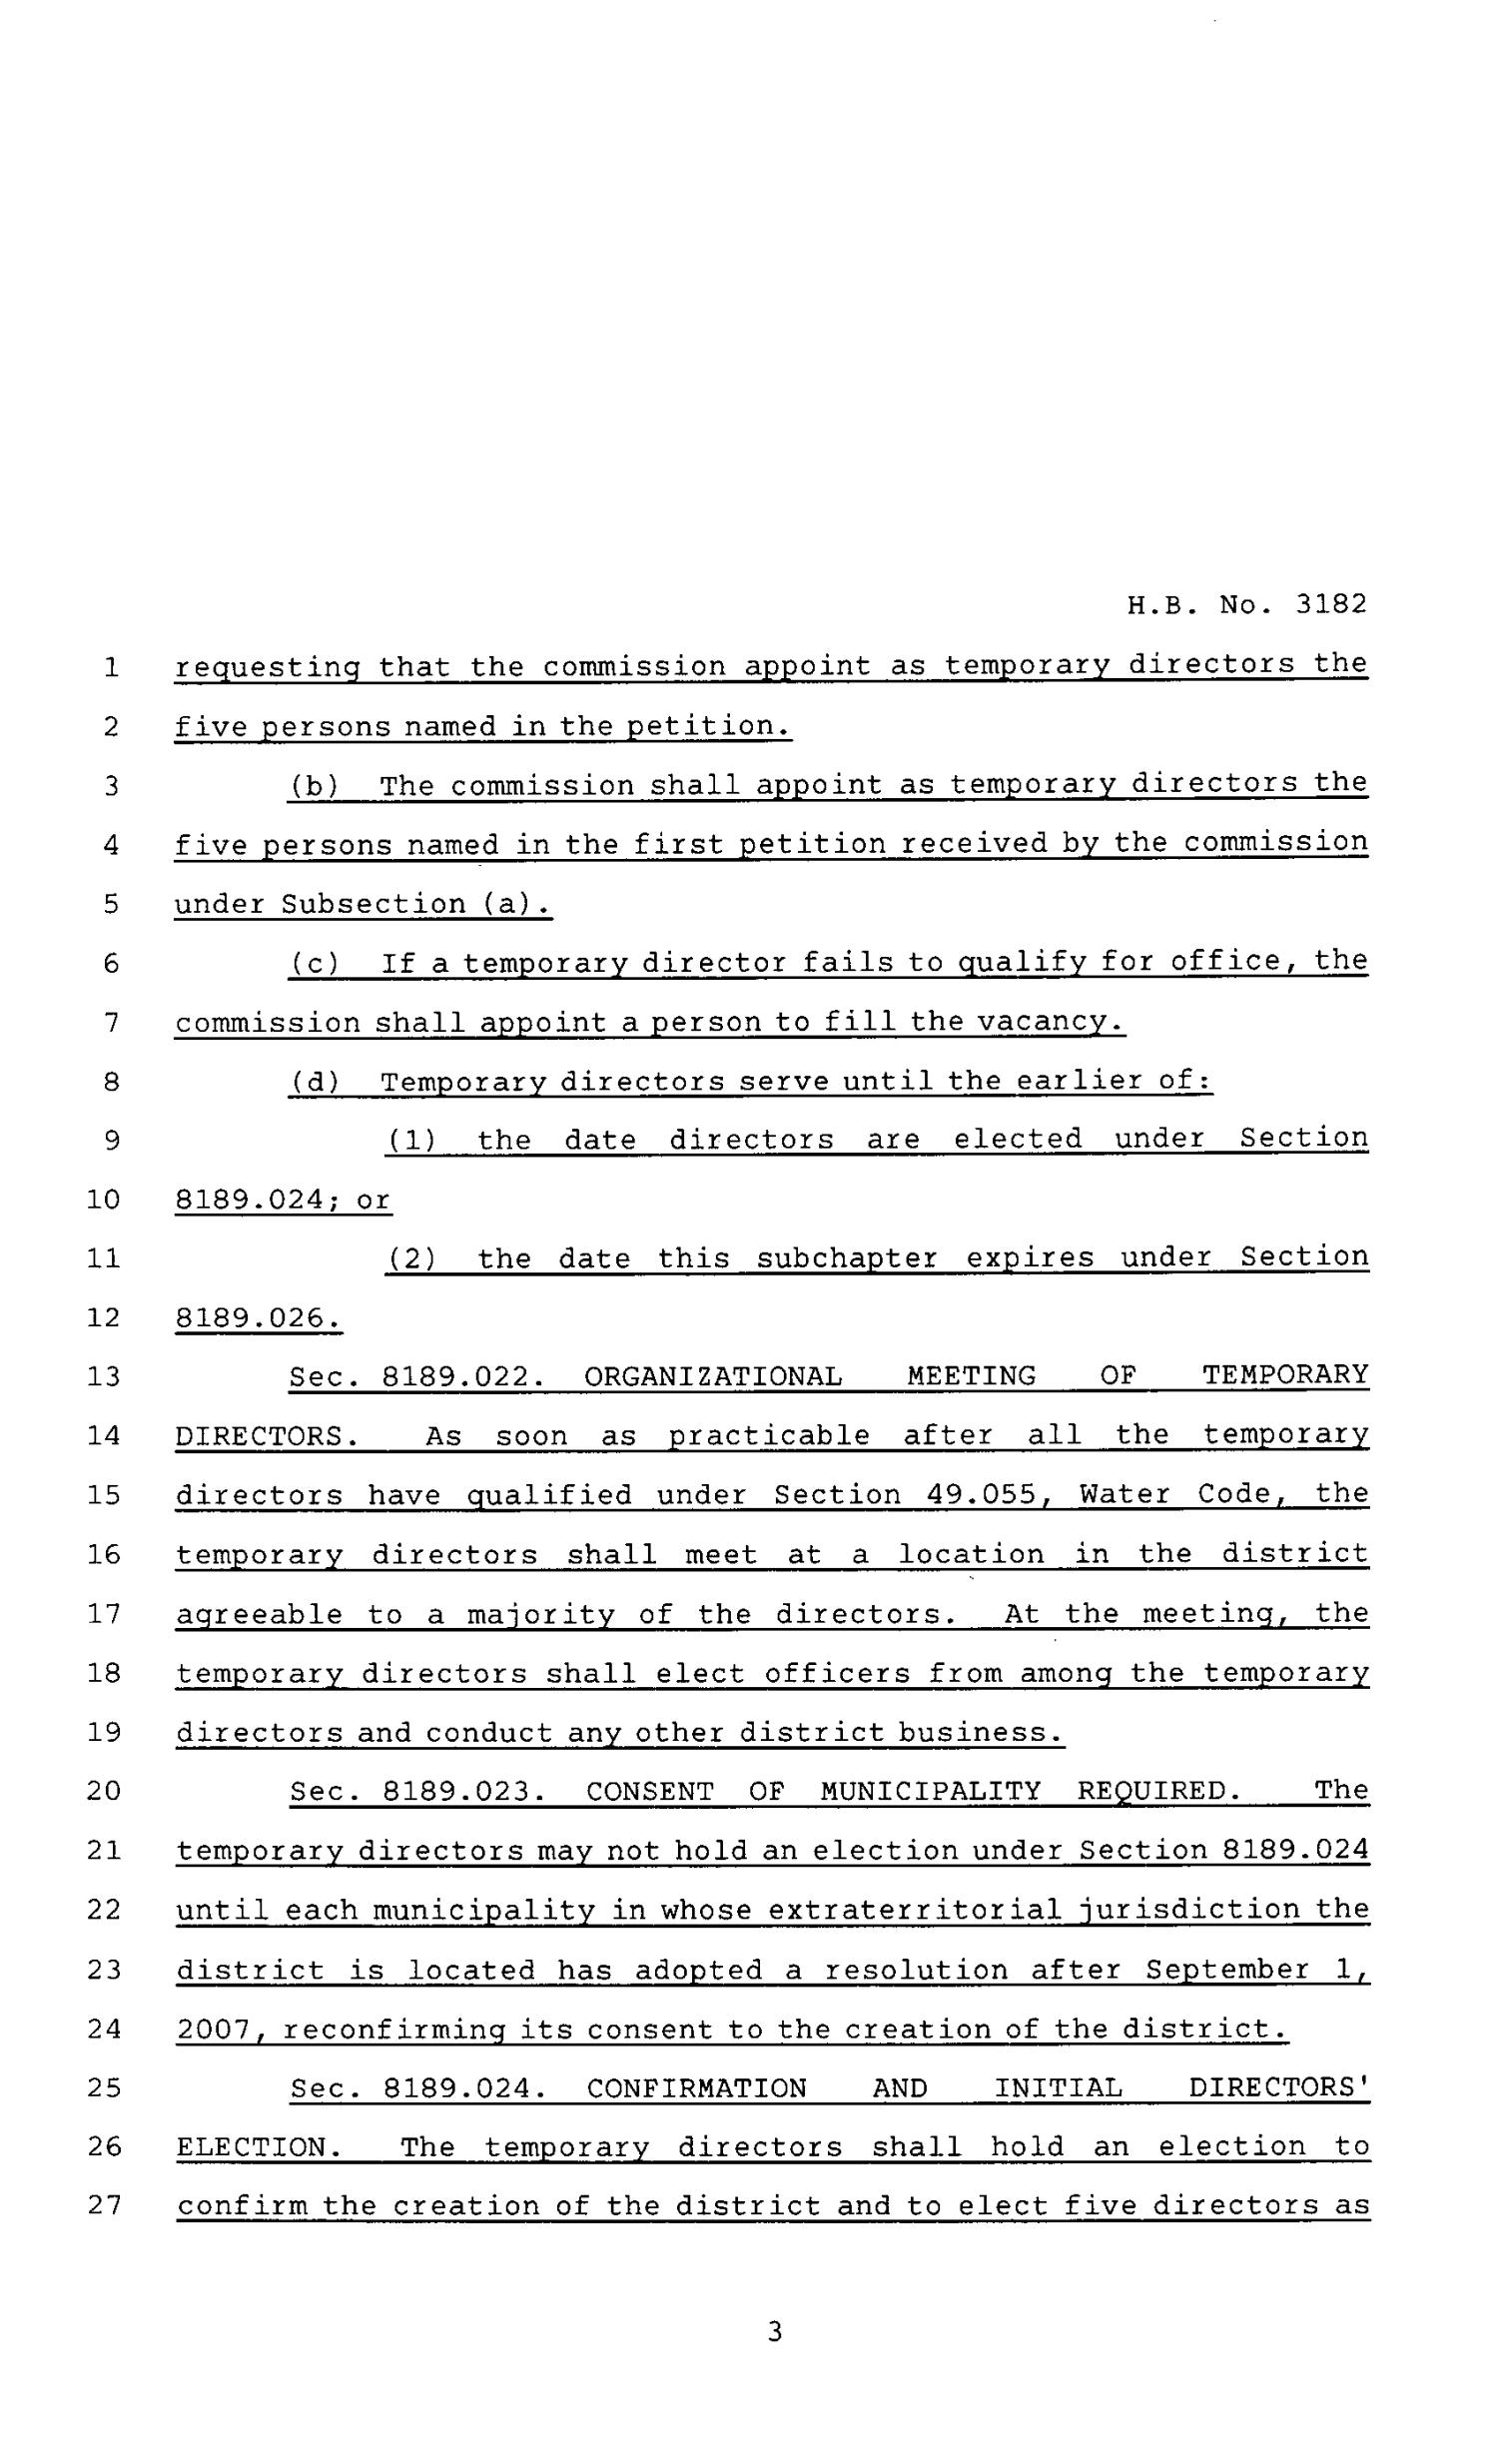 80th Texas Legislature, Regular Session, House Bill 3182, Chapter 752                                                                                                      [Sequence #]: 3 of 22